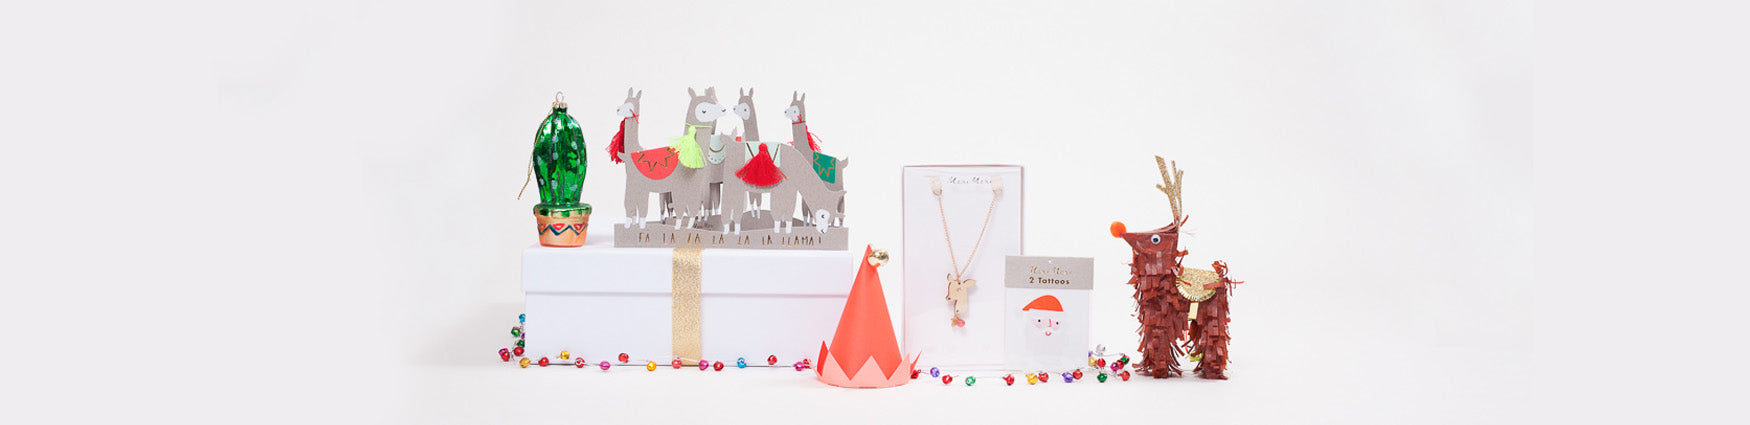 Shop the Christmas themed edit at Roo's beach UK